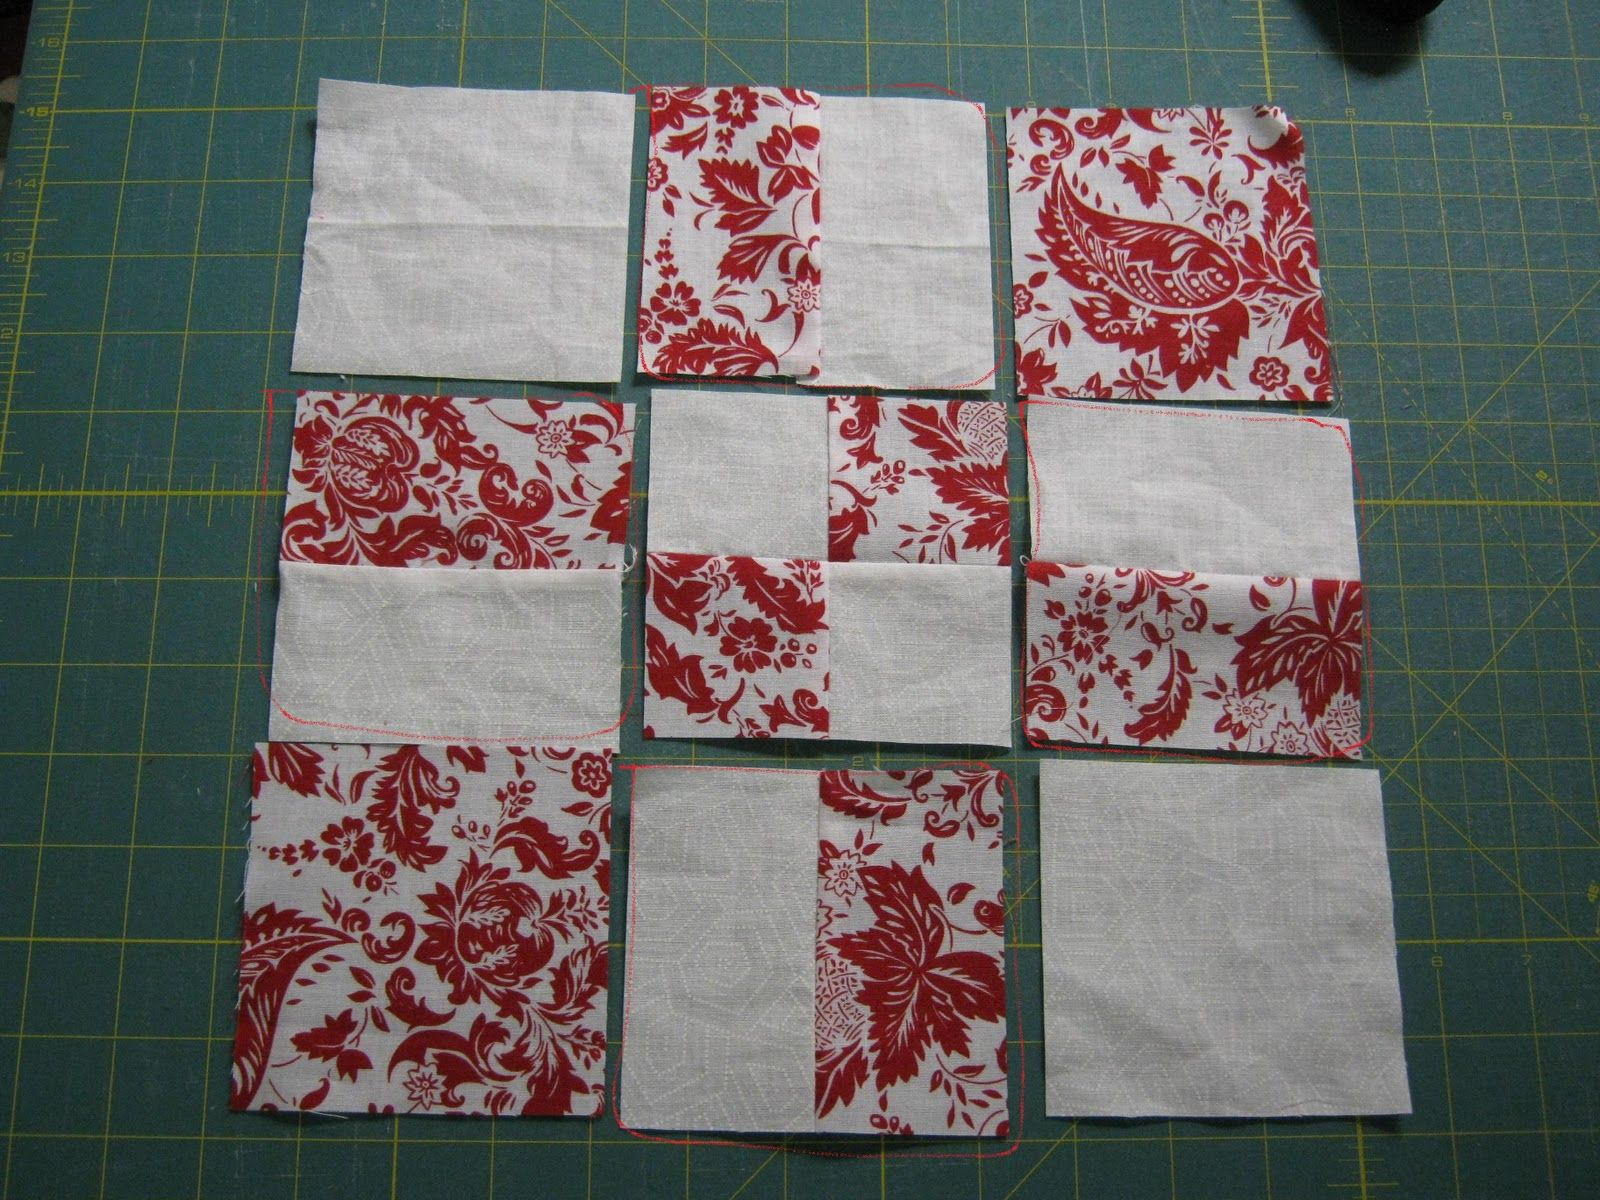 Free Charm Square Quilt Patterns | Free Quilt Patterns ... : charm quilt patterns easy - Adamdwight.com